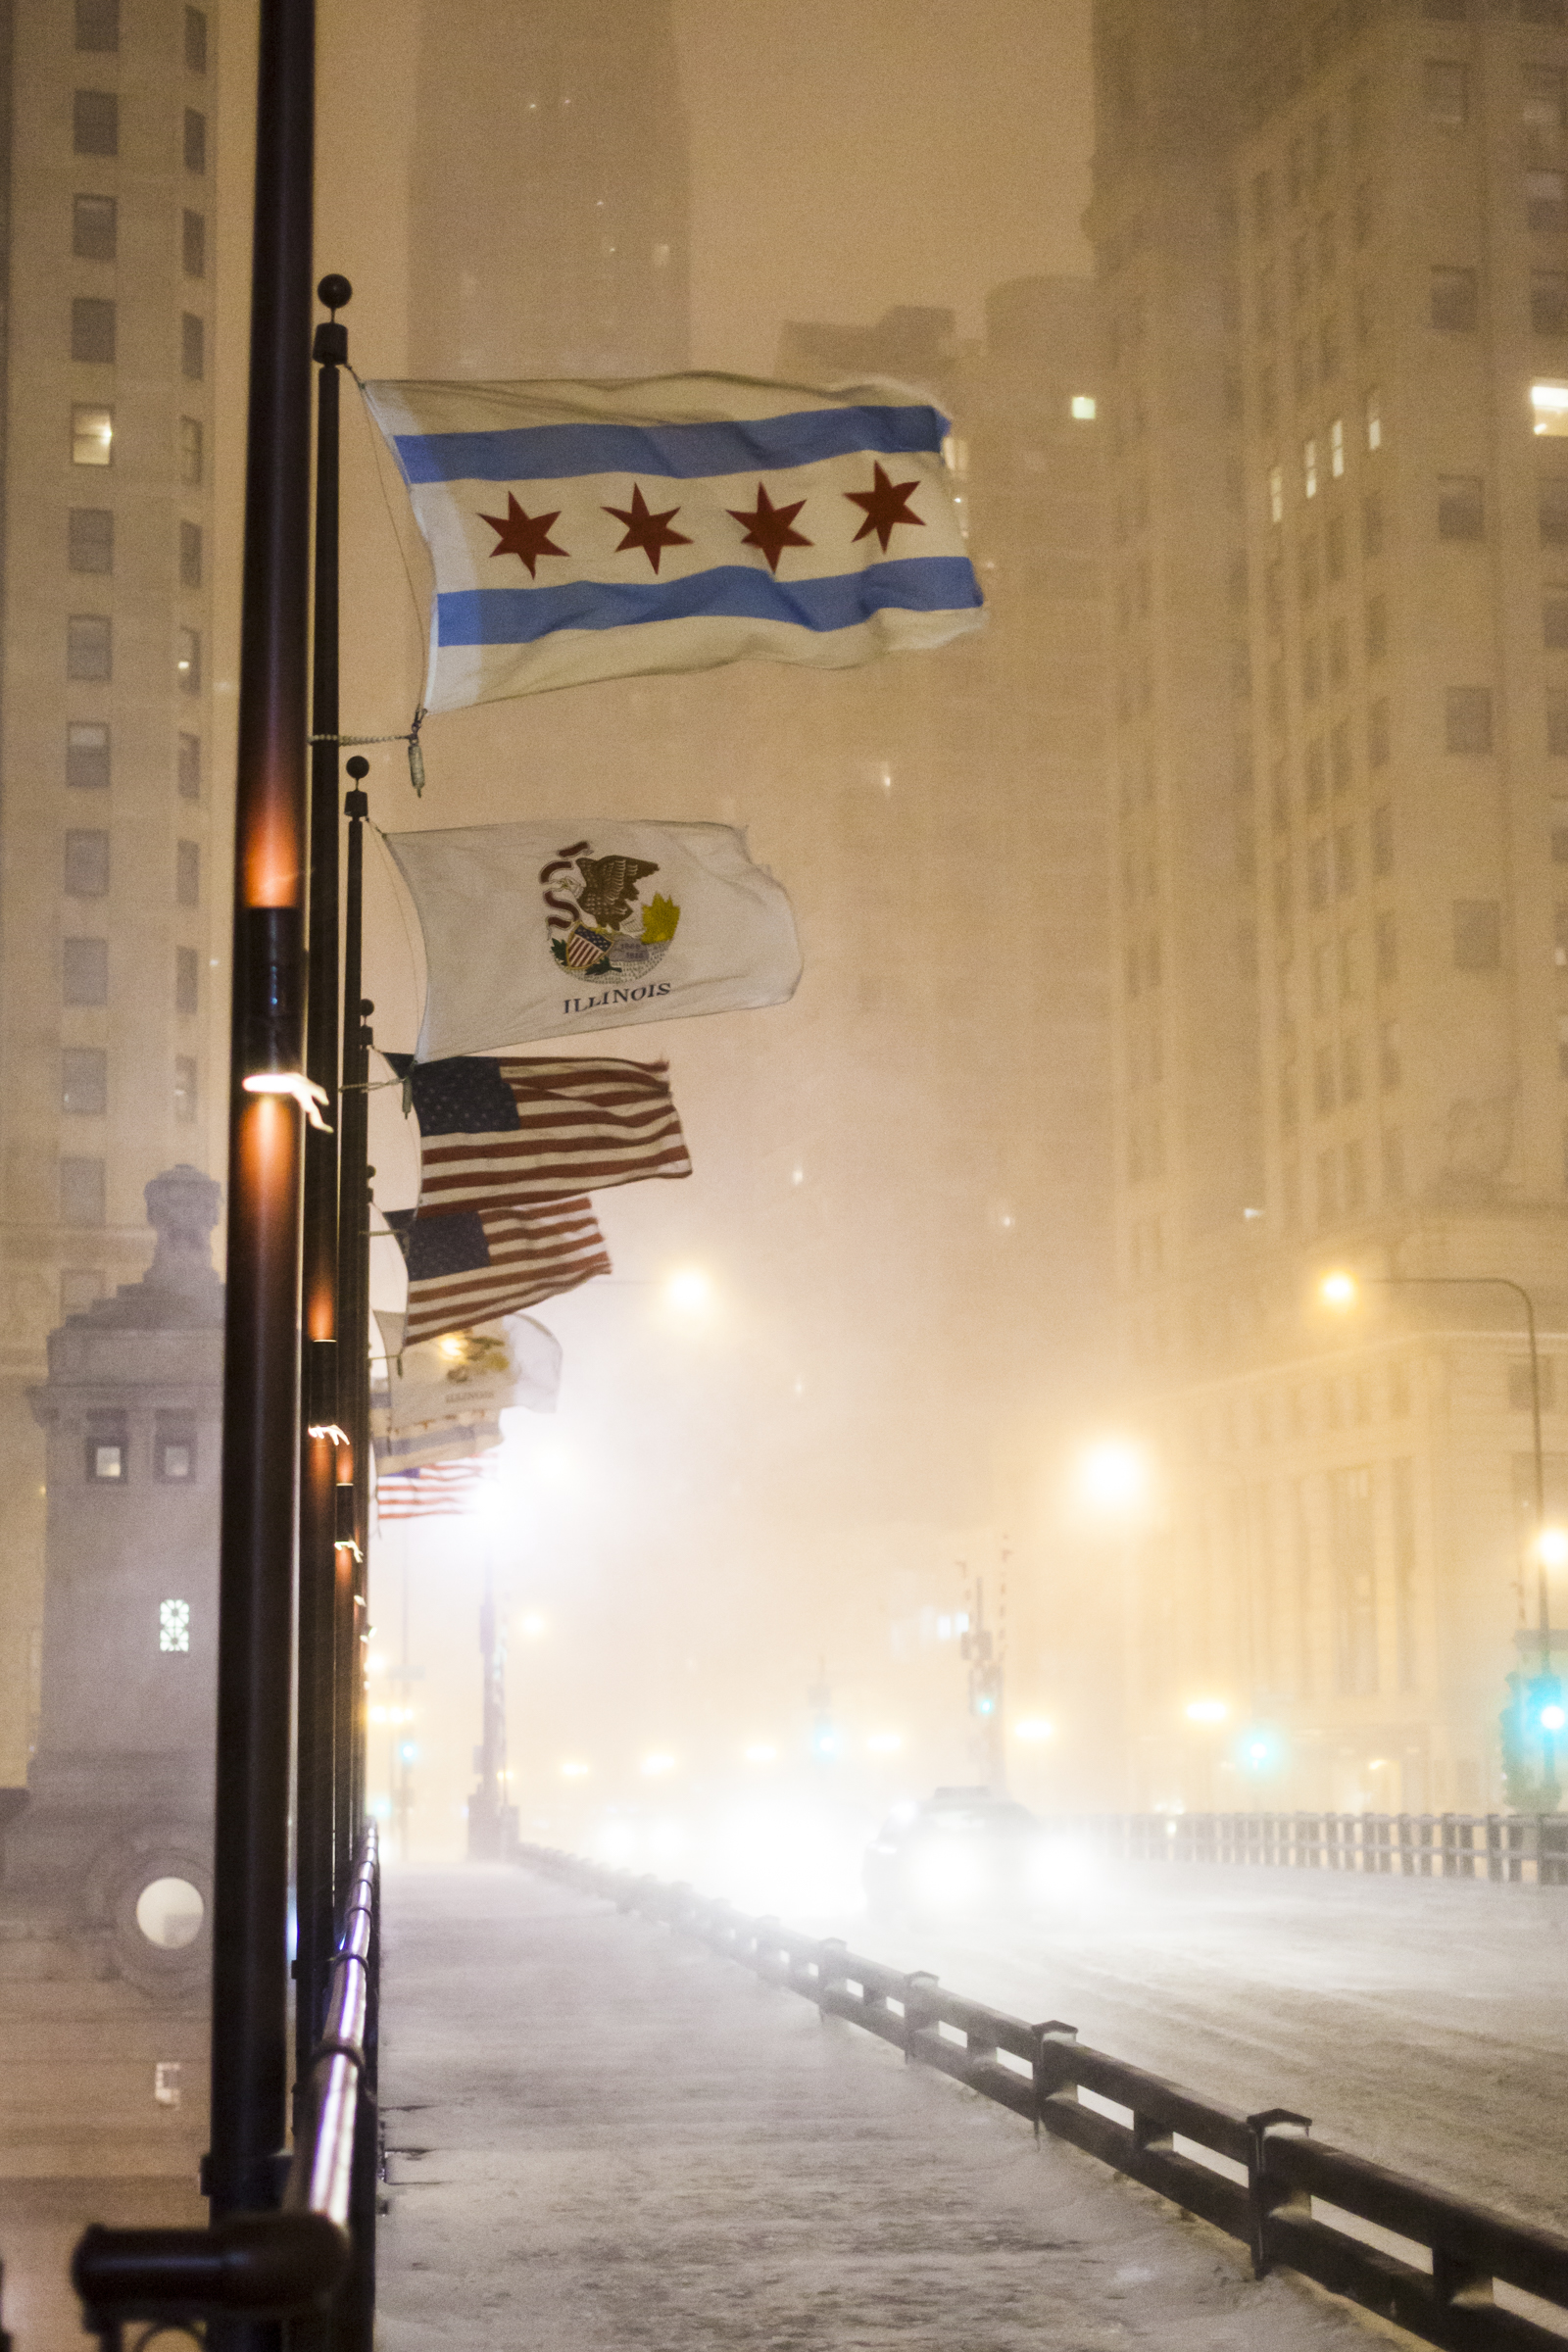 chicago- blizzard - snow storm-008.jpg